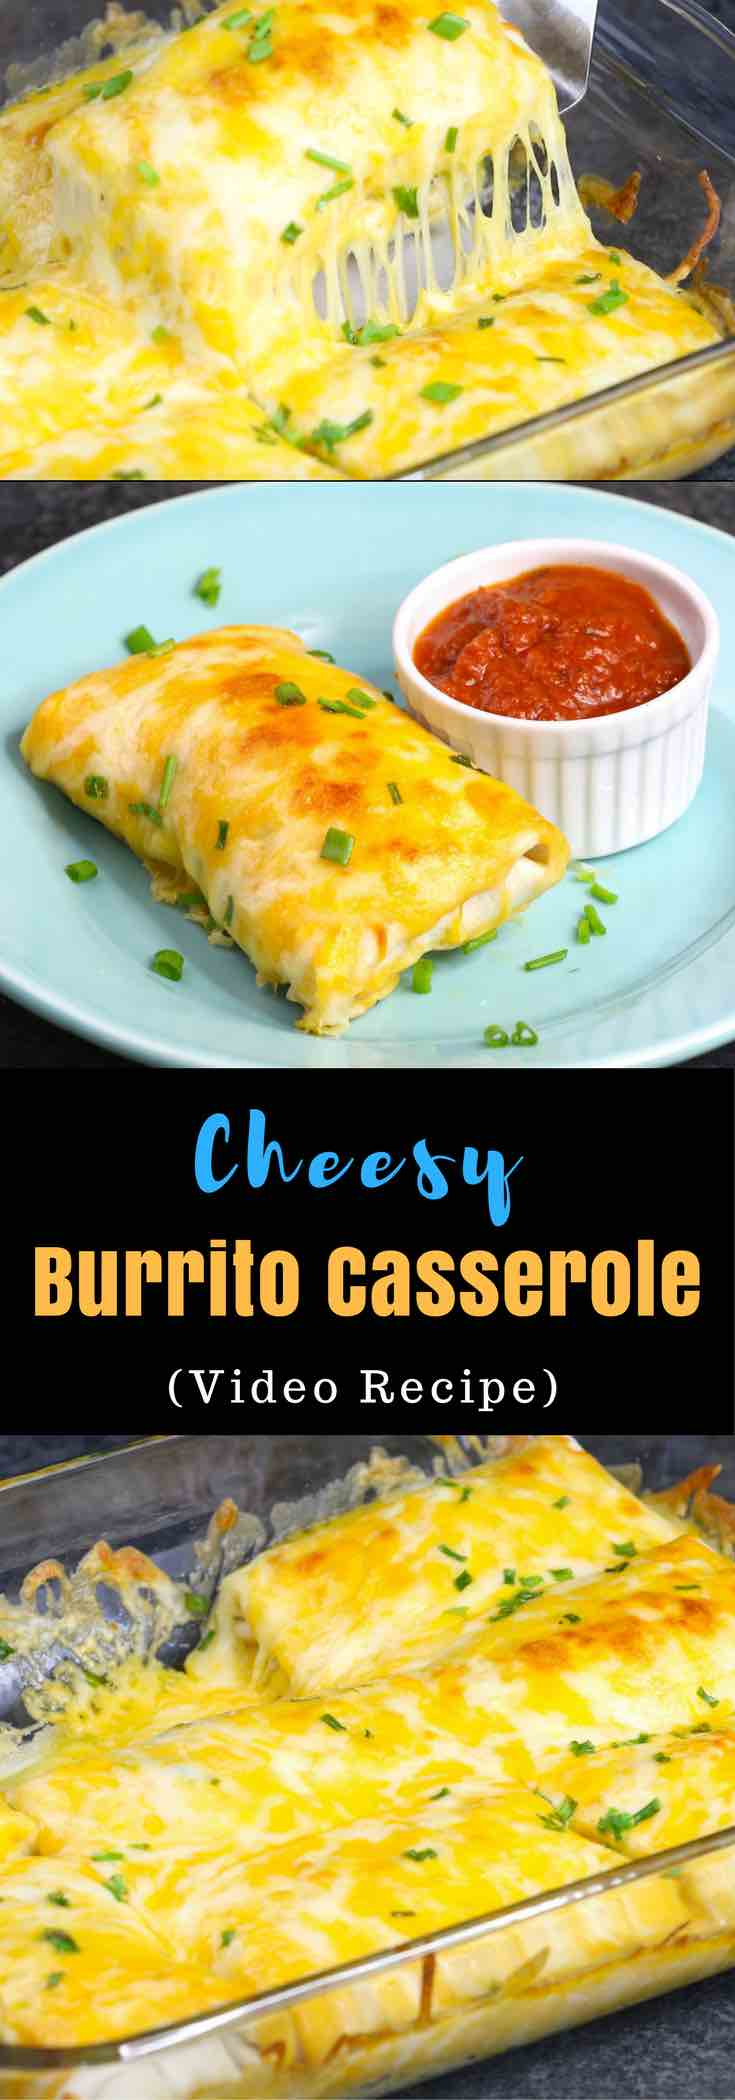 This Cheesy Burrito Casserole is loaded with meat and cheese for a dinner option the whole family will love. All you need is some simple ingredients: ground beef, onions, seasoning, tortillas, cheese. Make ahead recipe. Video recipe. tipbuzz.com